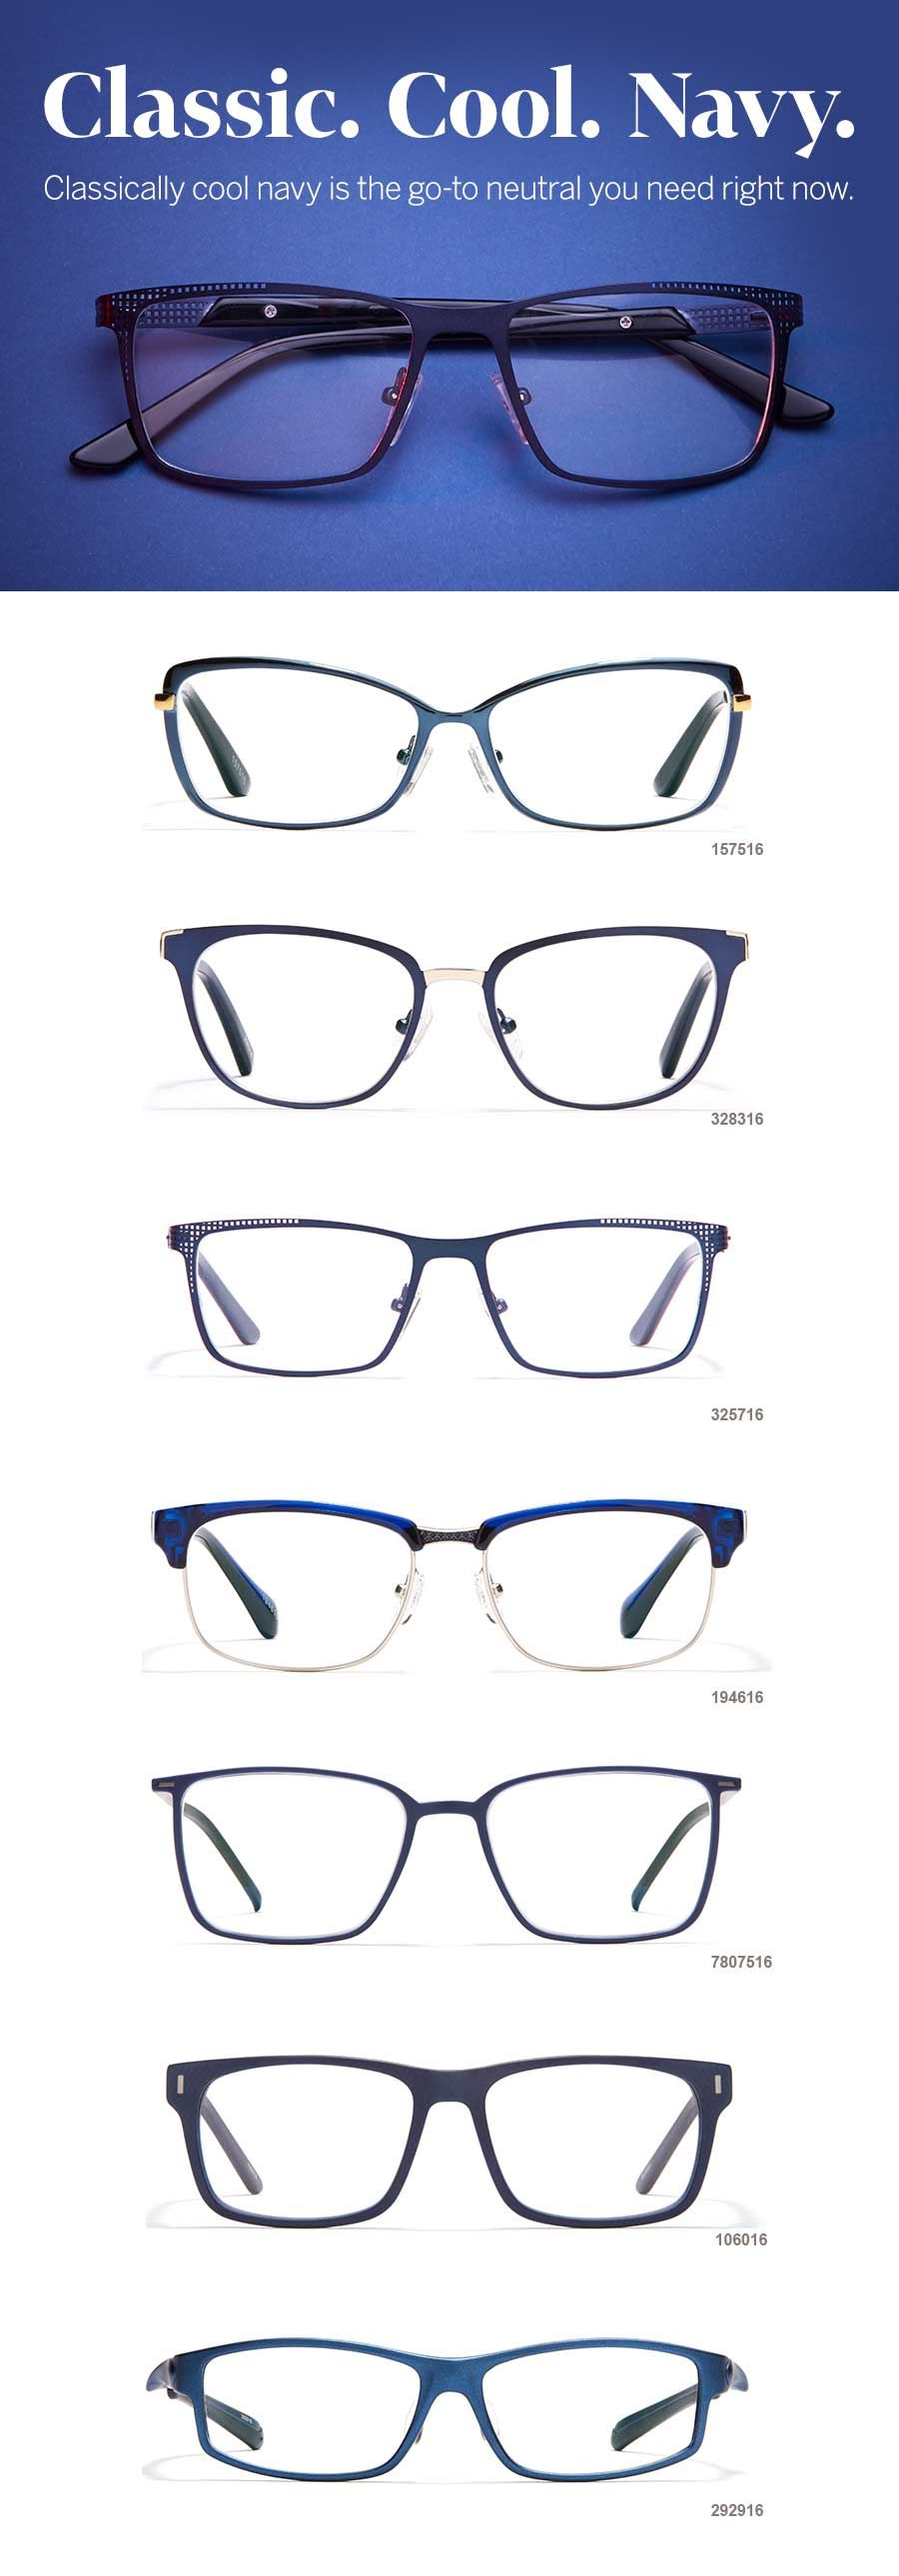 Perfect navy glasses to pair with your navy OOTD! | Fashion ...